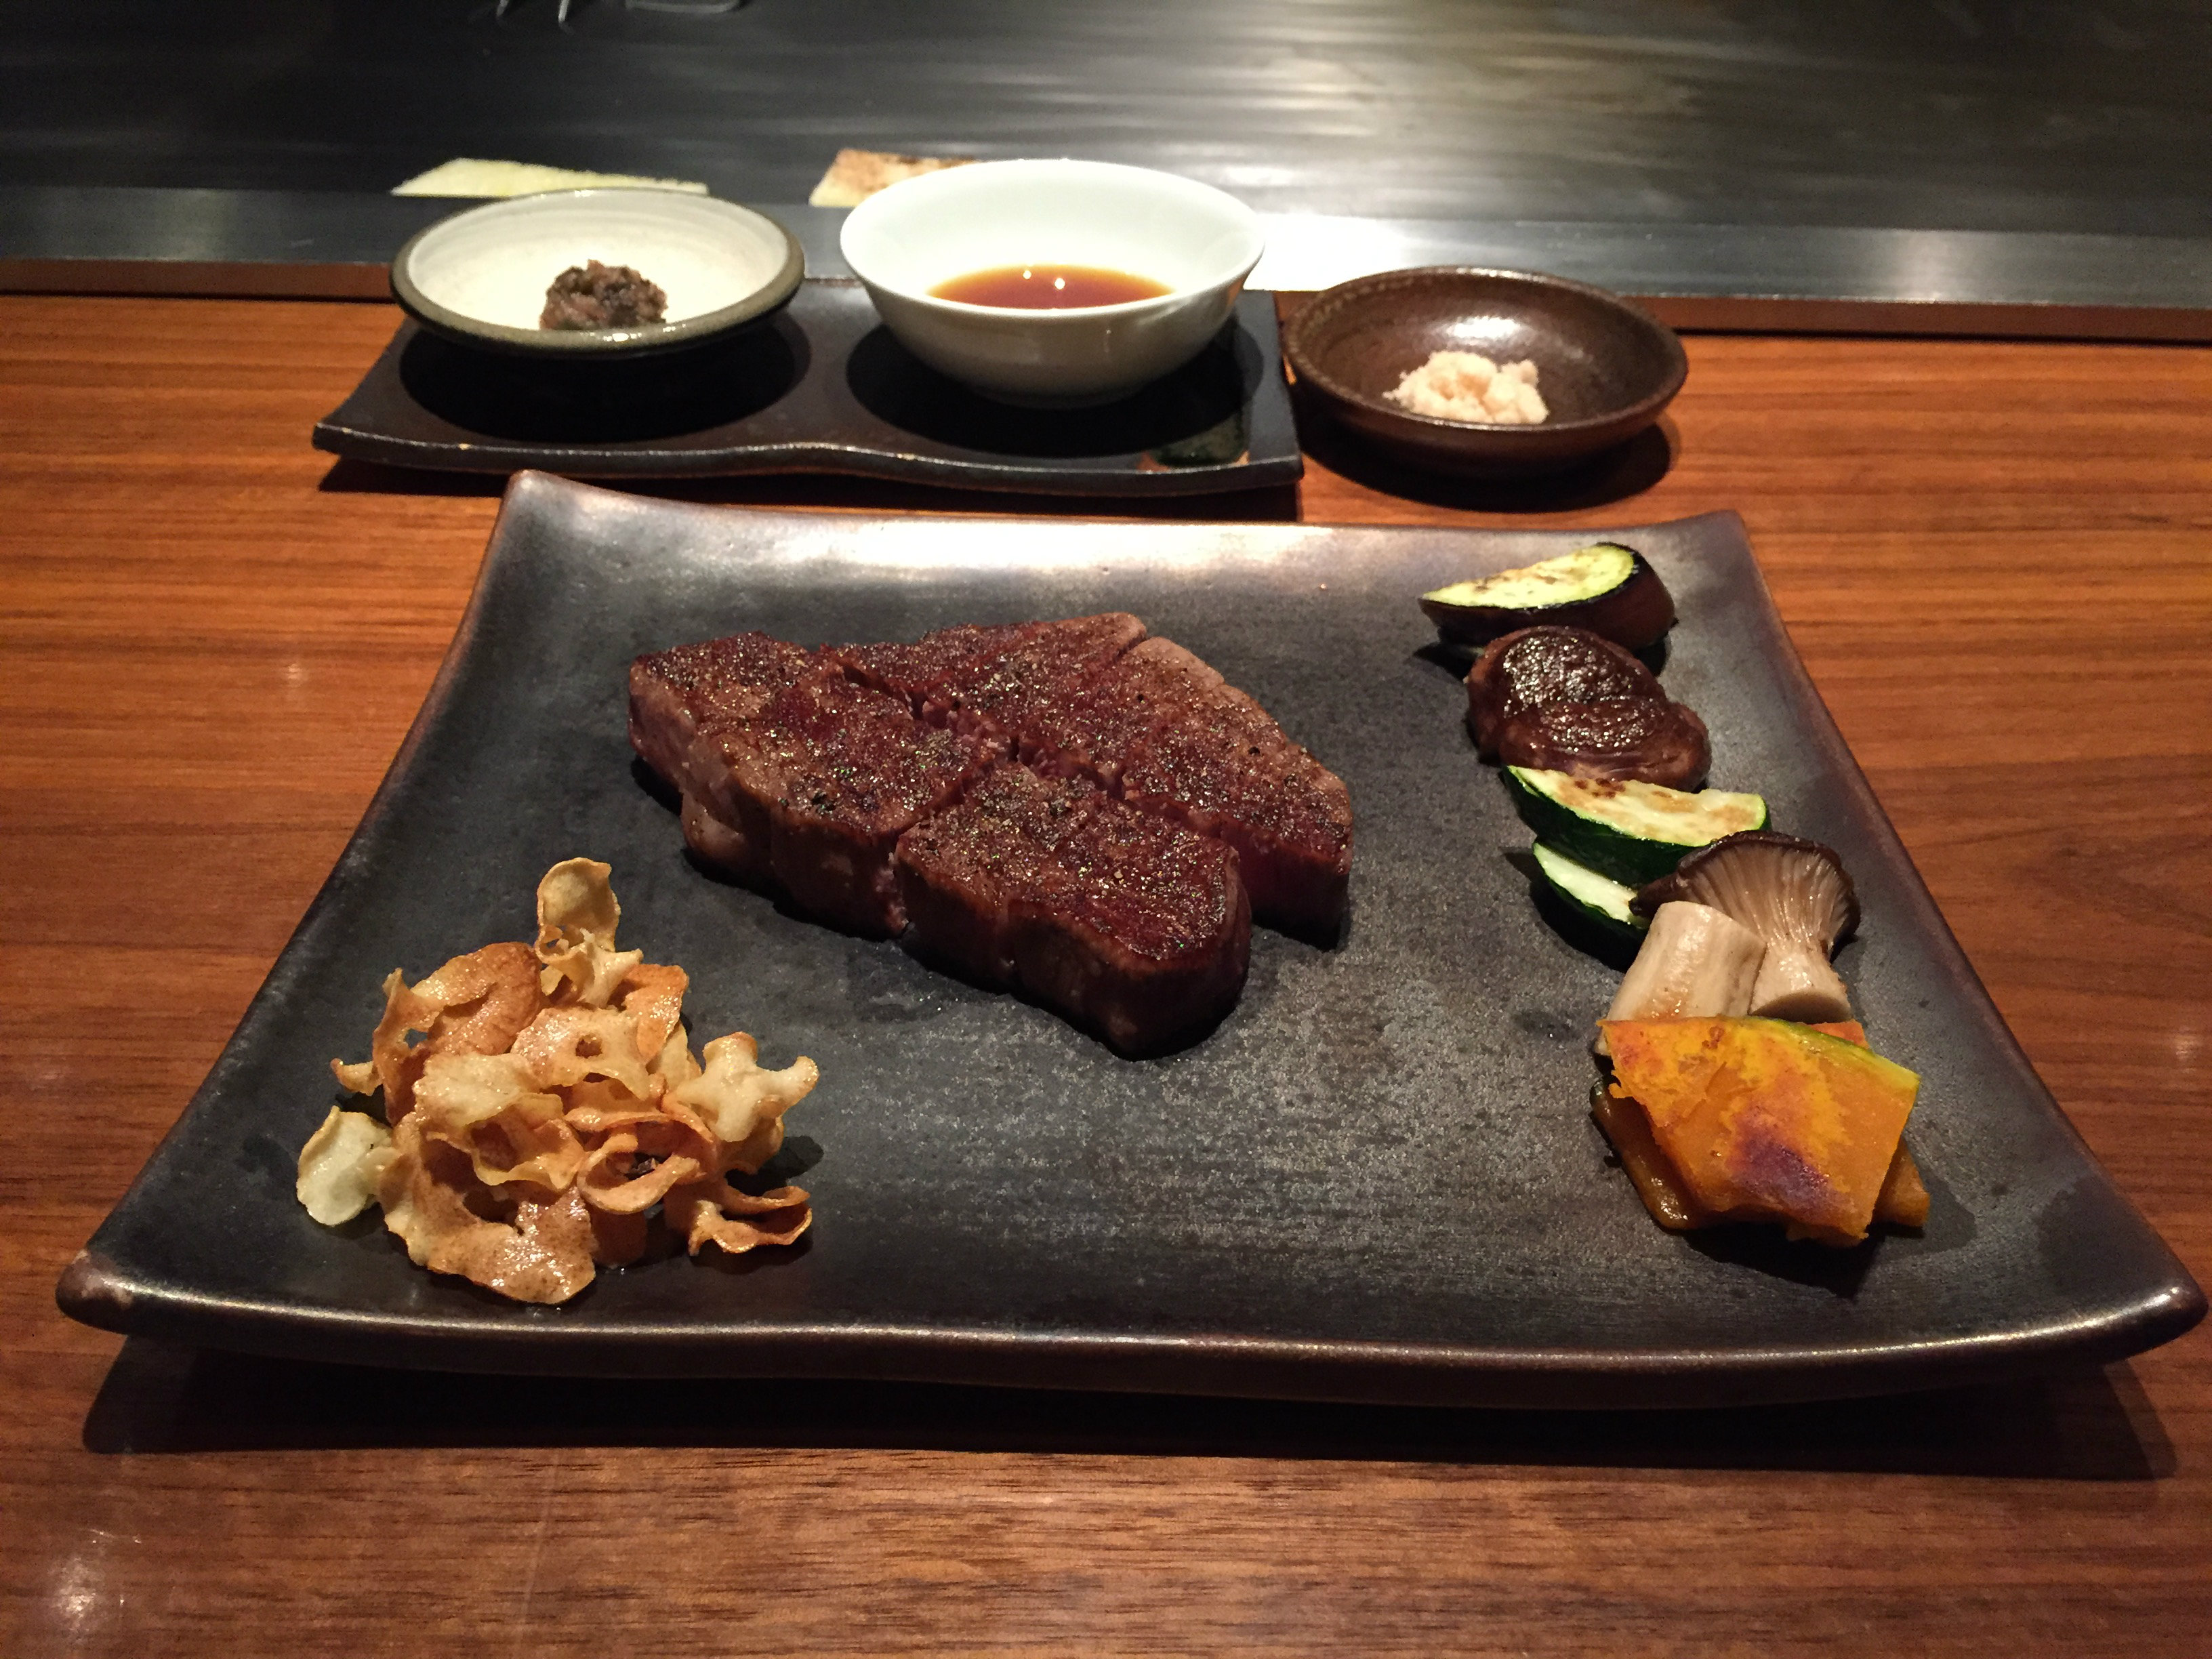 ritz-carlton okinawa food